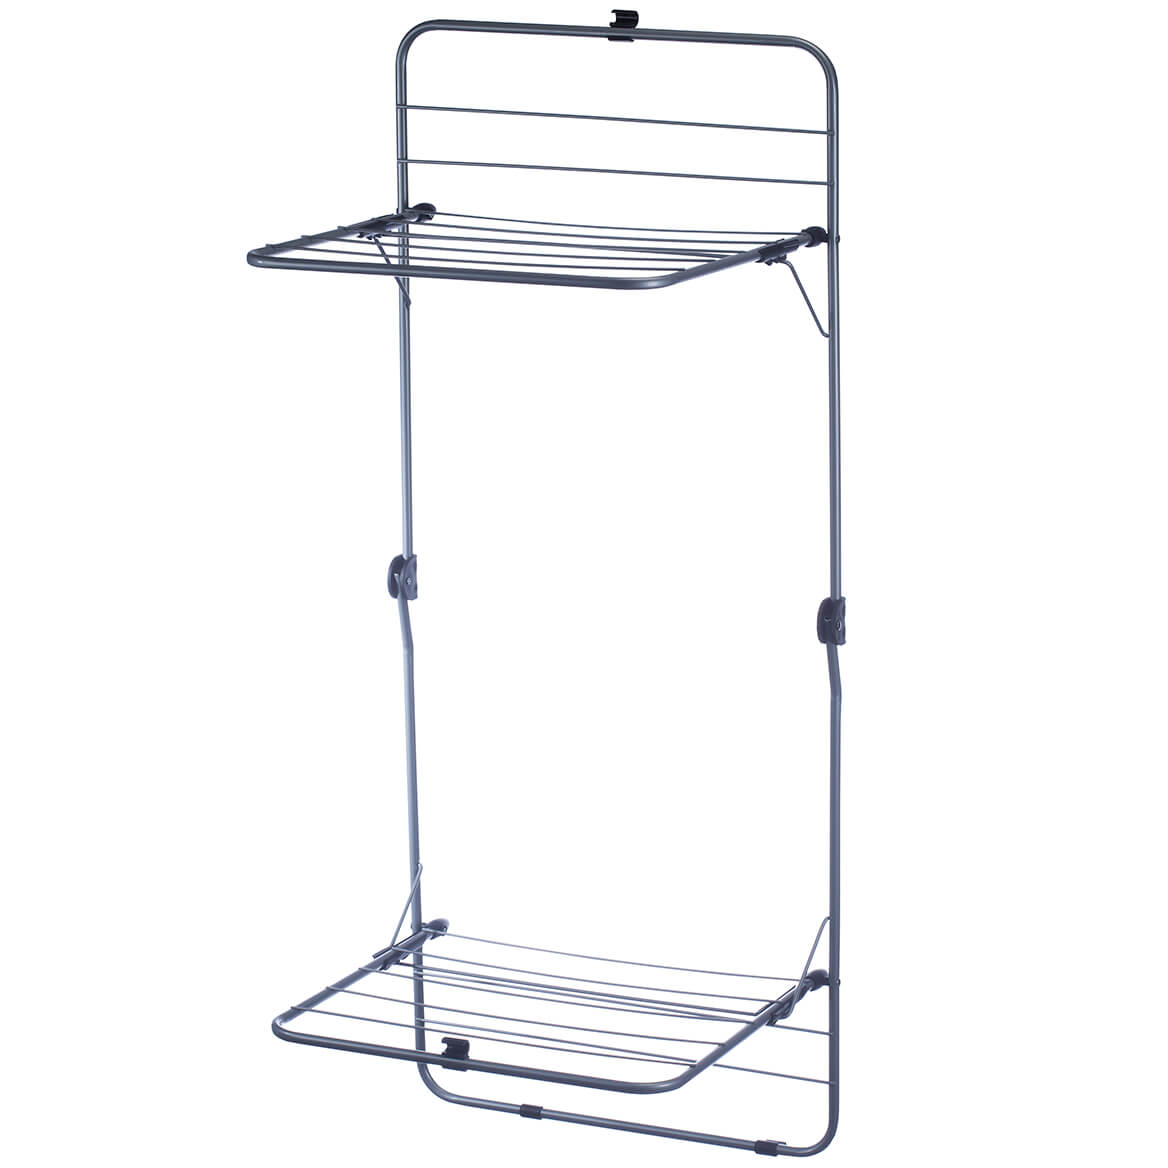 2 Tier Over The Door Laundry Clothes Drying Rack Steel Opens To